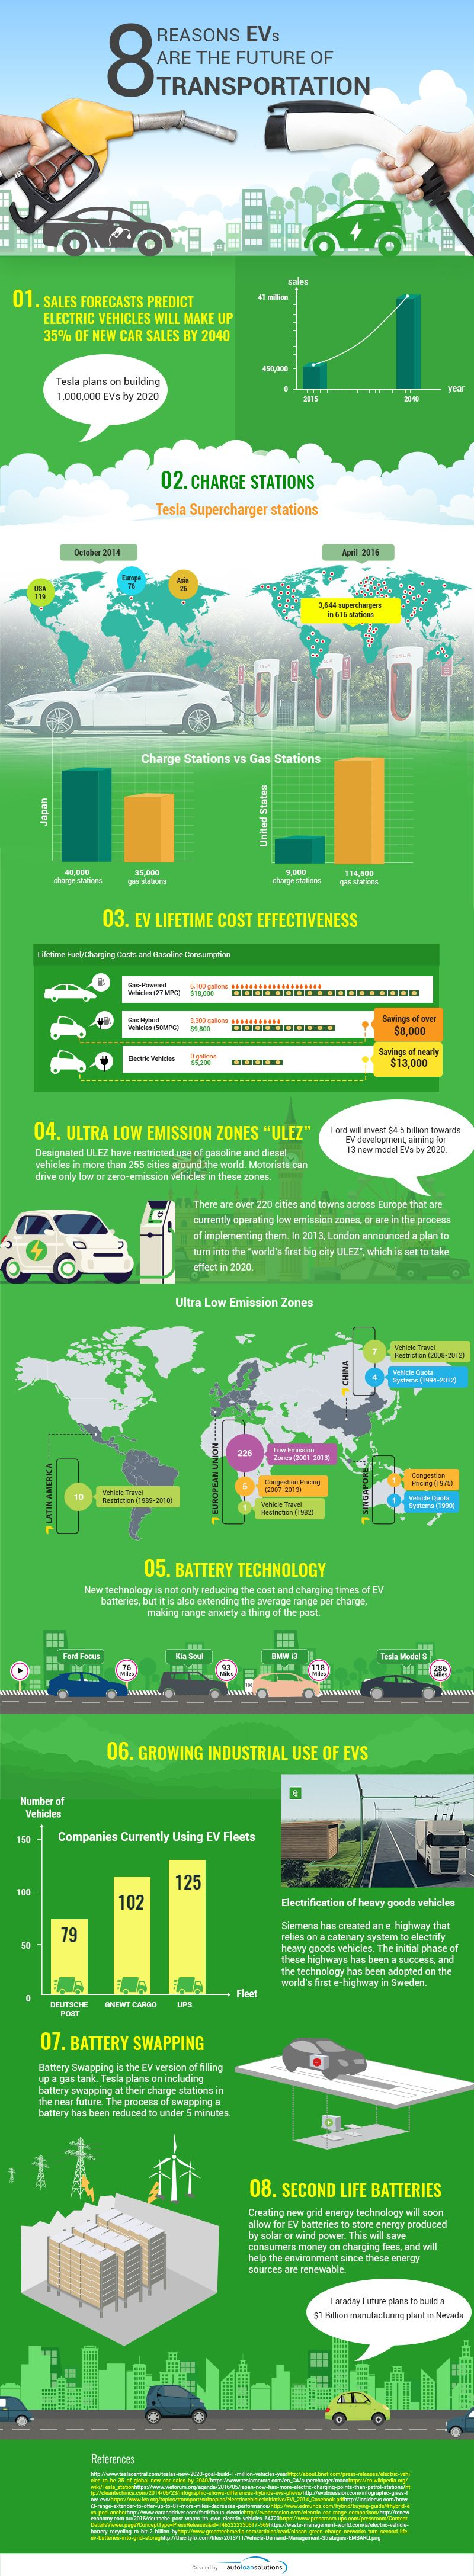 8 Reasons EVs are the Future of Transportation #Infographic